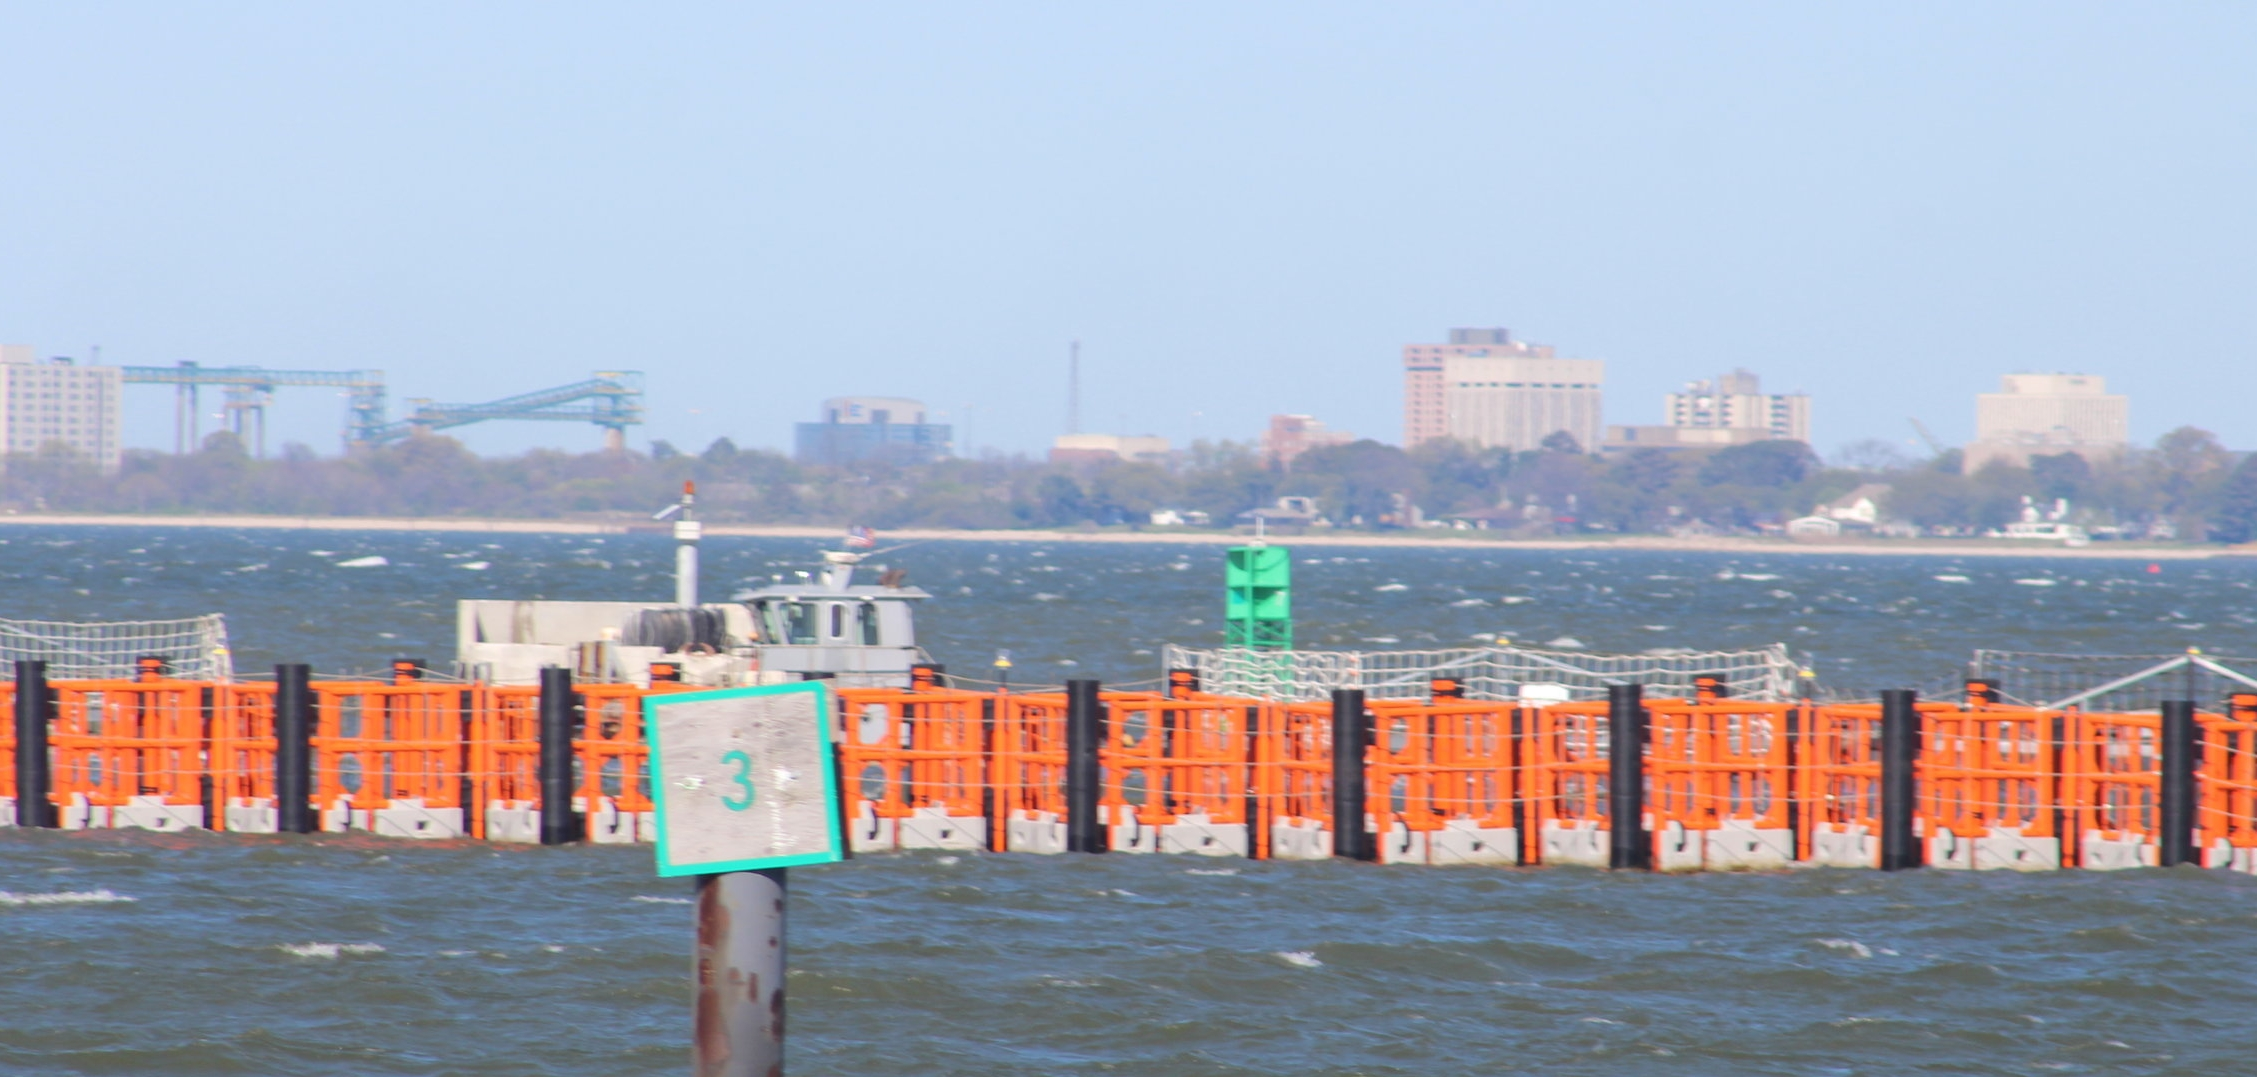 HALO GUARDIAN® system installed for US Navy Testing at Naval Station Norfolk, Virginia, USA. US Navy has awarded HALO Maritime Defense Systems a contract to install GUARDIAN® Automatic RDB's at Naval Station Norfolk.